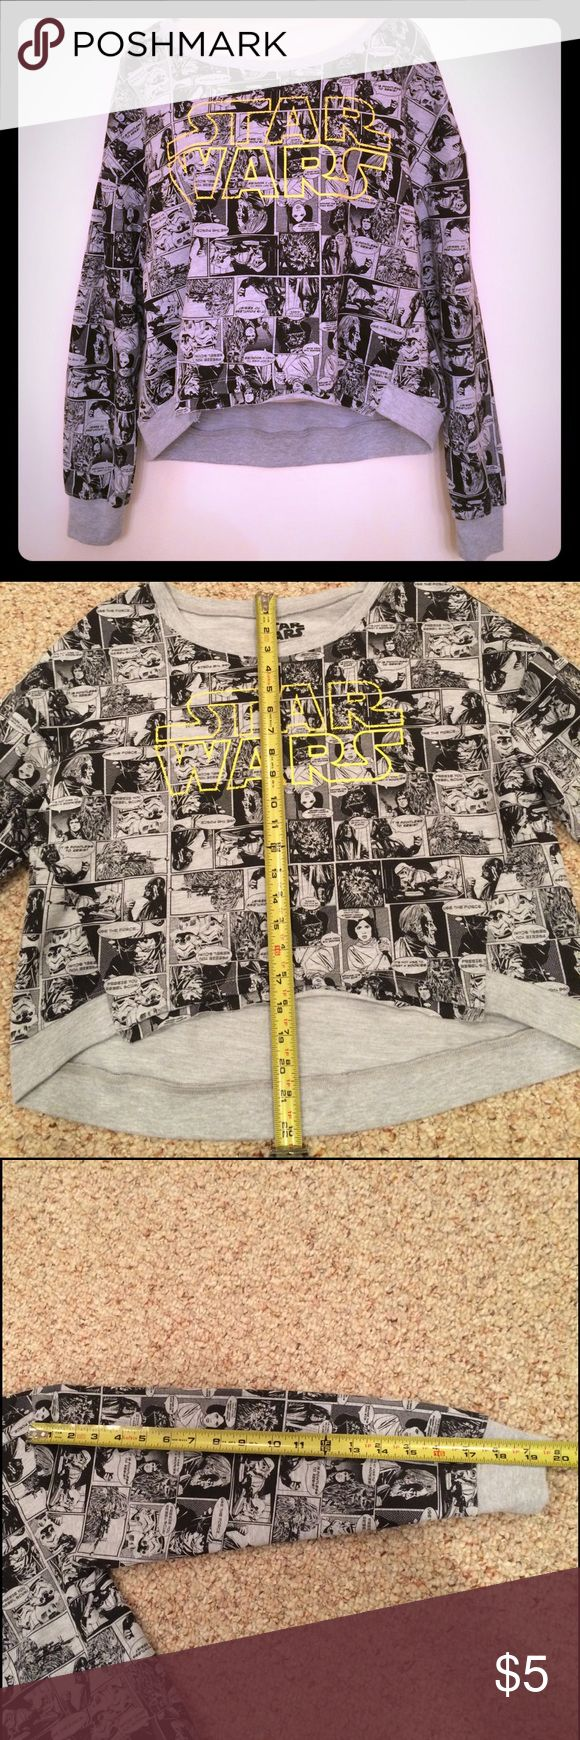 Star Wars sweatshirt. This is used hi-lo Star Wars sweatshirt. It looks like someone has altered it somewhat, but it is still very cool for a SW fan.  Price reflects this. See pics 4 & 5. Size M. Great graphics. Star Wars Tops Sweatshirts & Hoodies